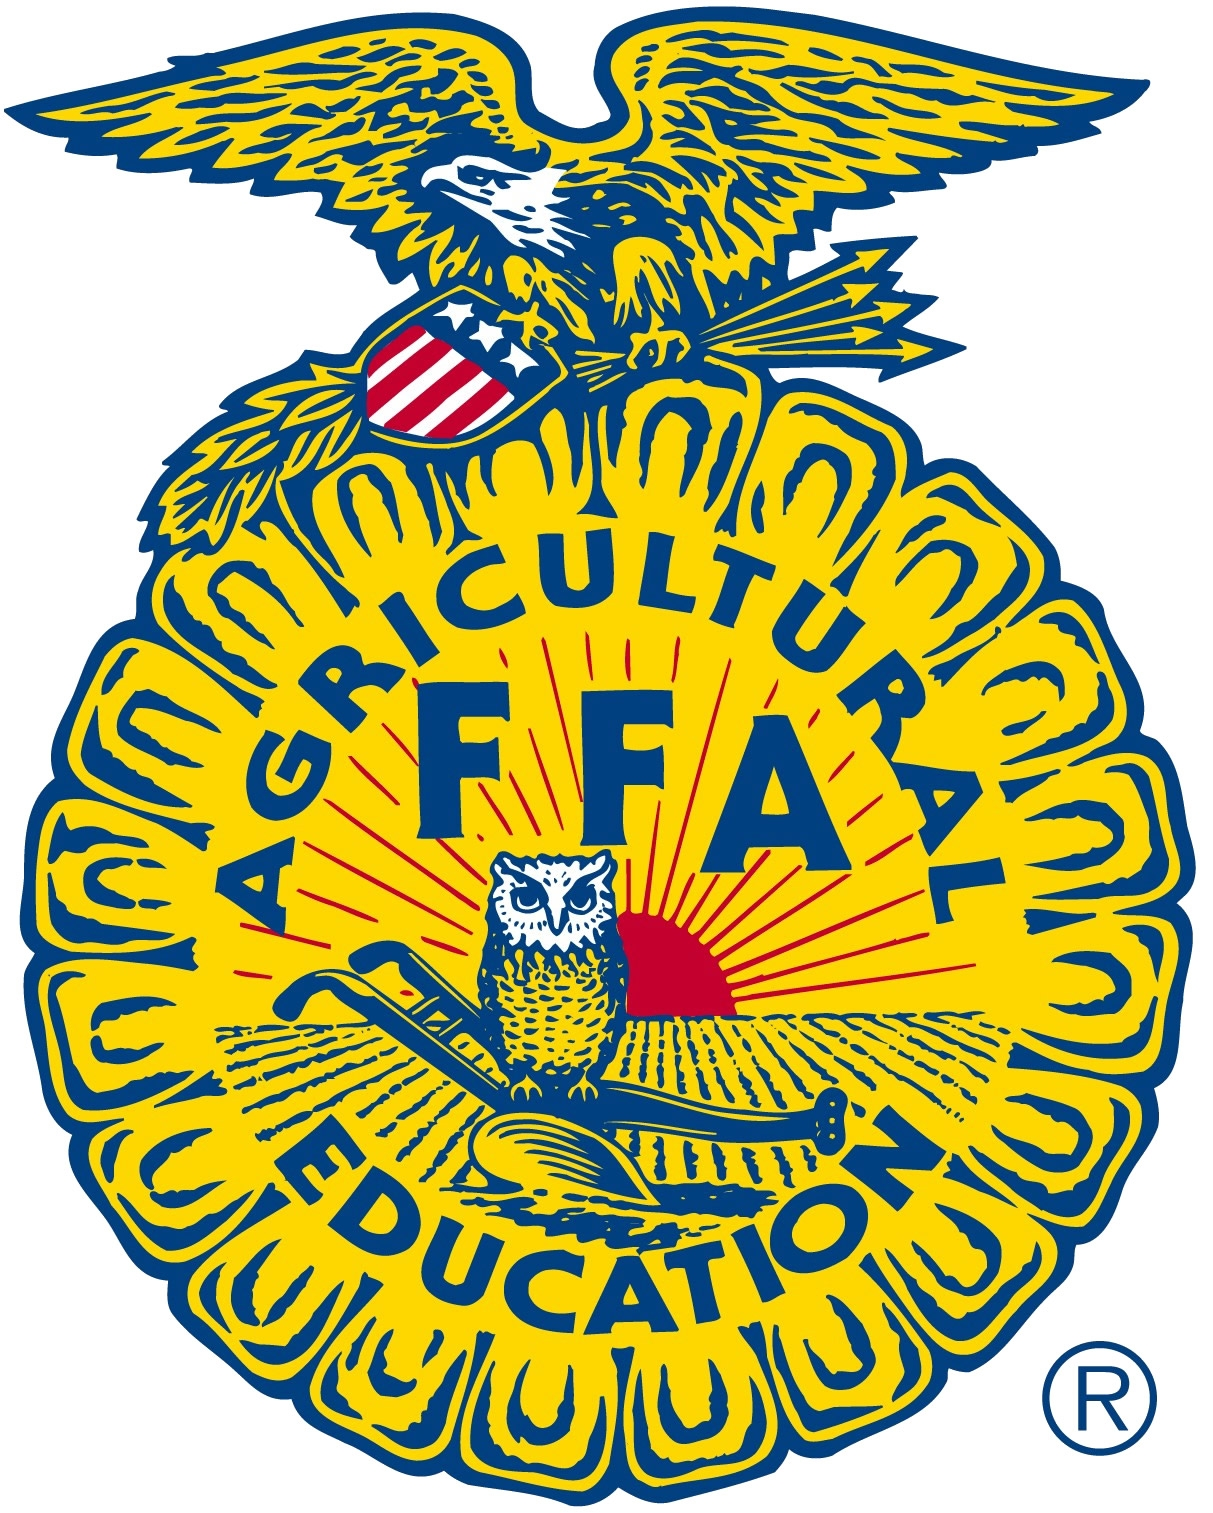 Sullivan FFA Fundraising Auction